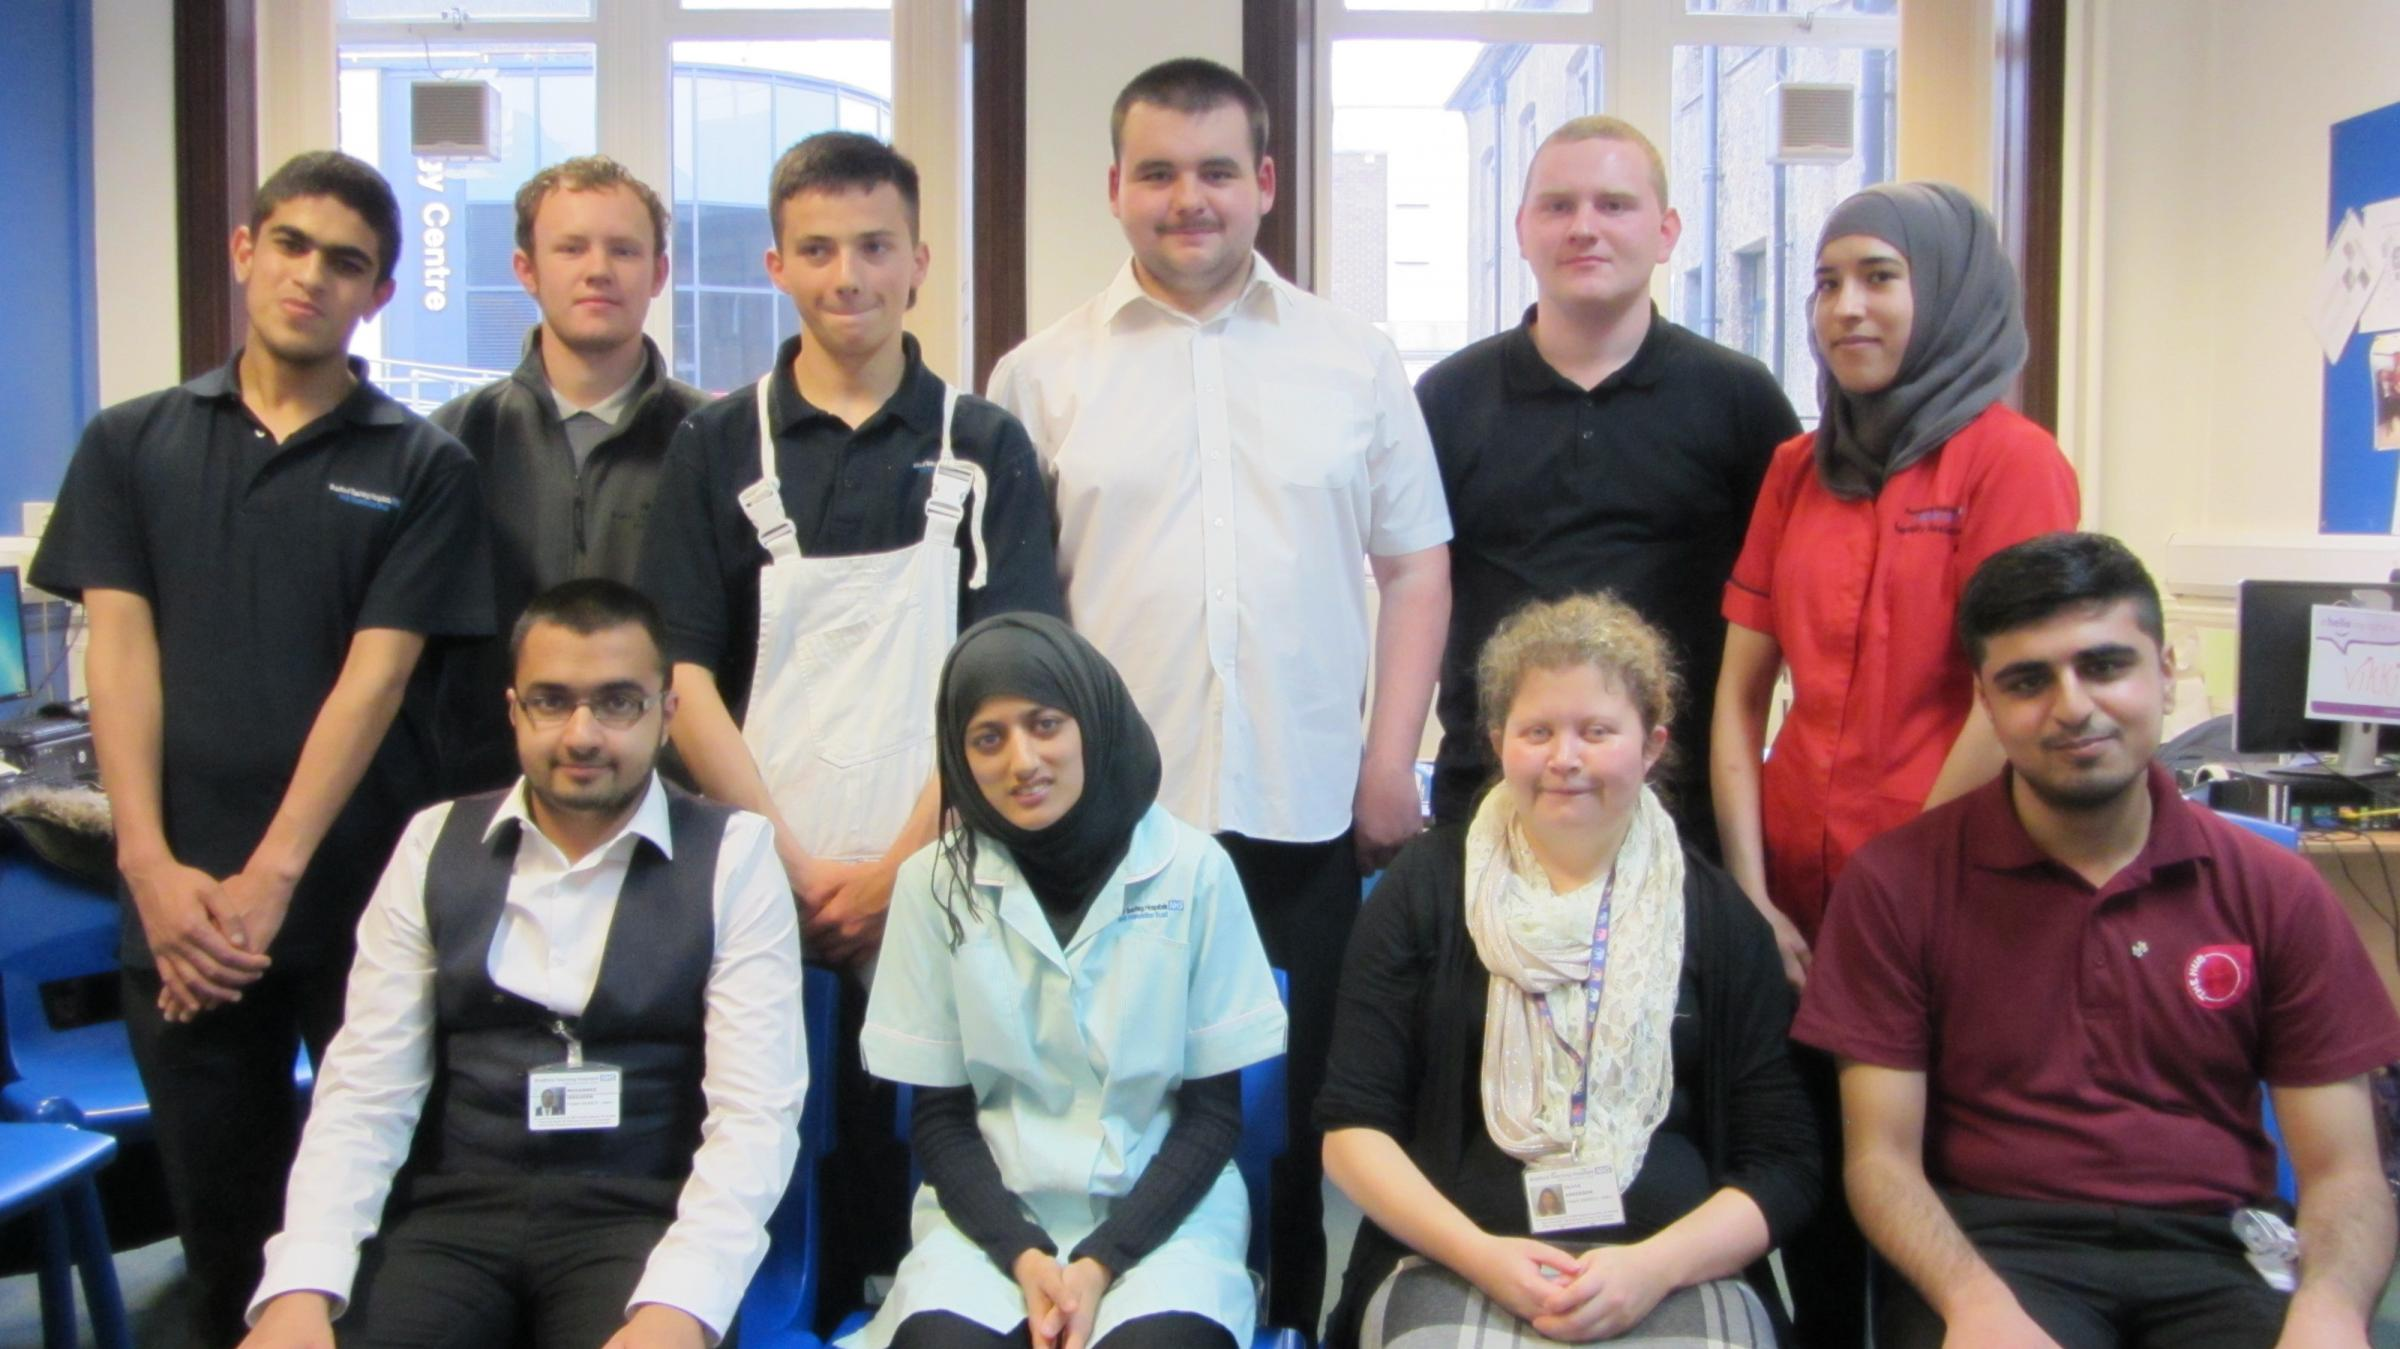 This year's Project SEARCH interns at Bradford Royal Infirmary